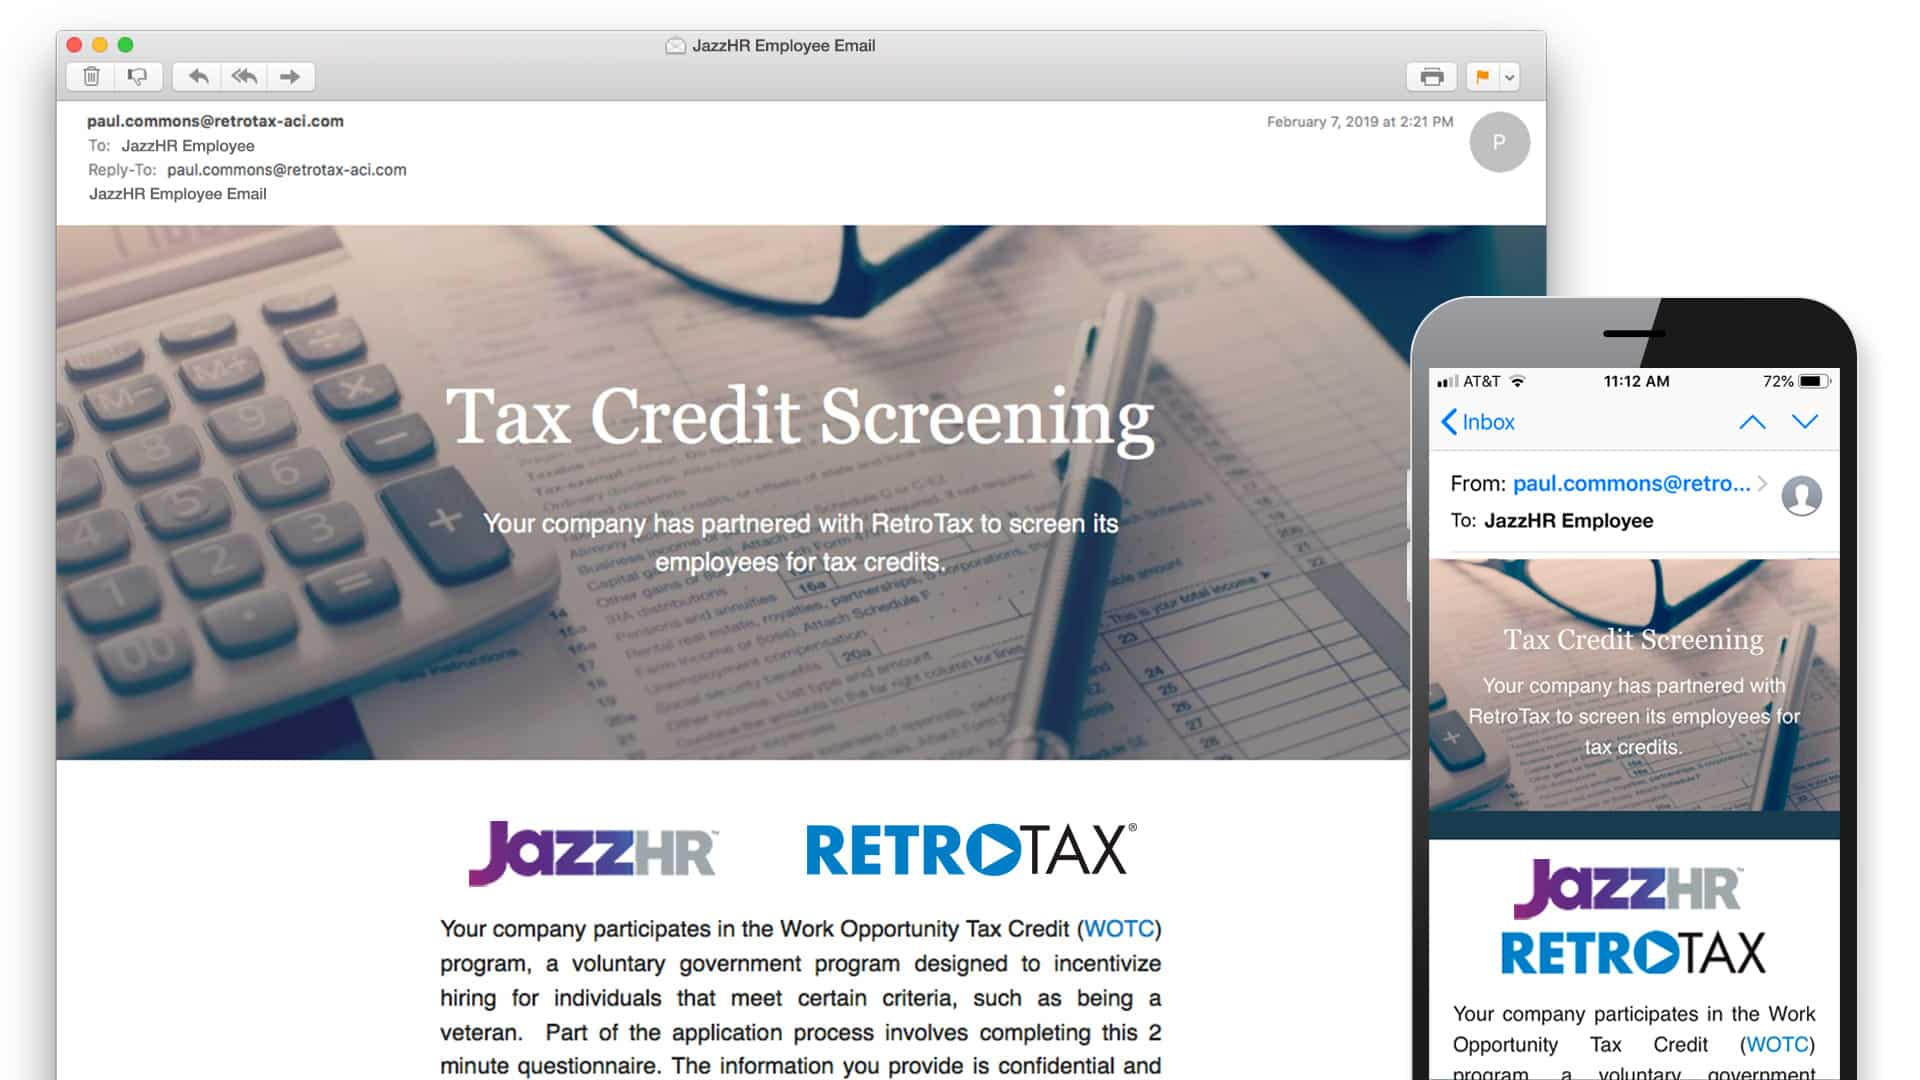 retrotax email